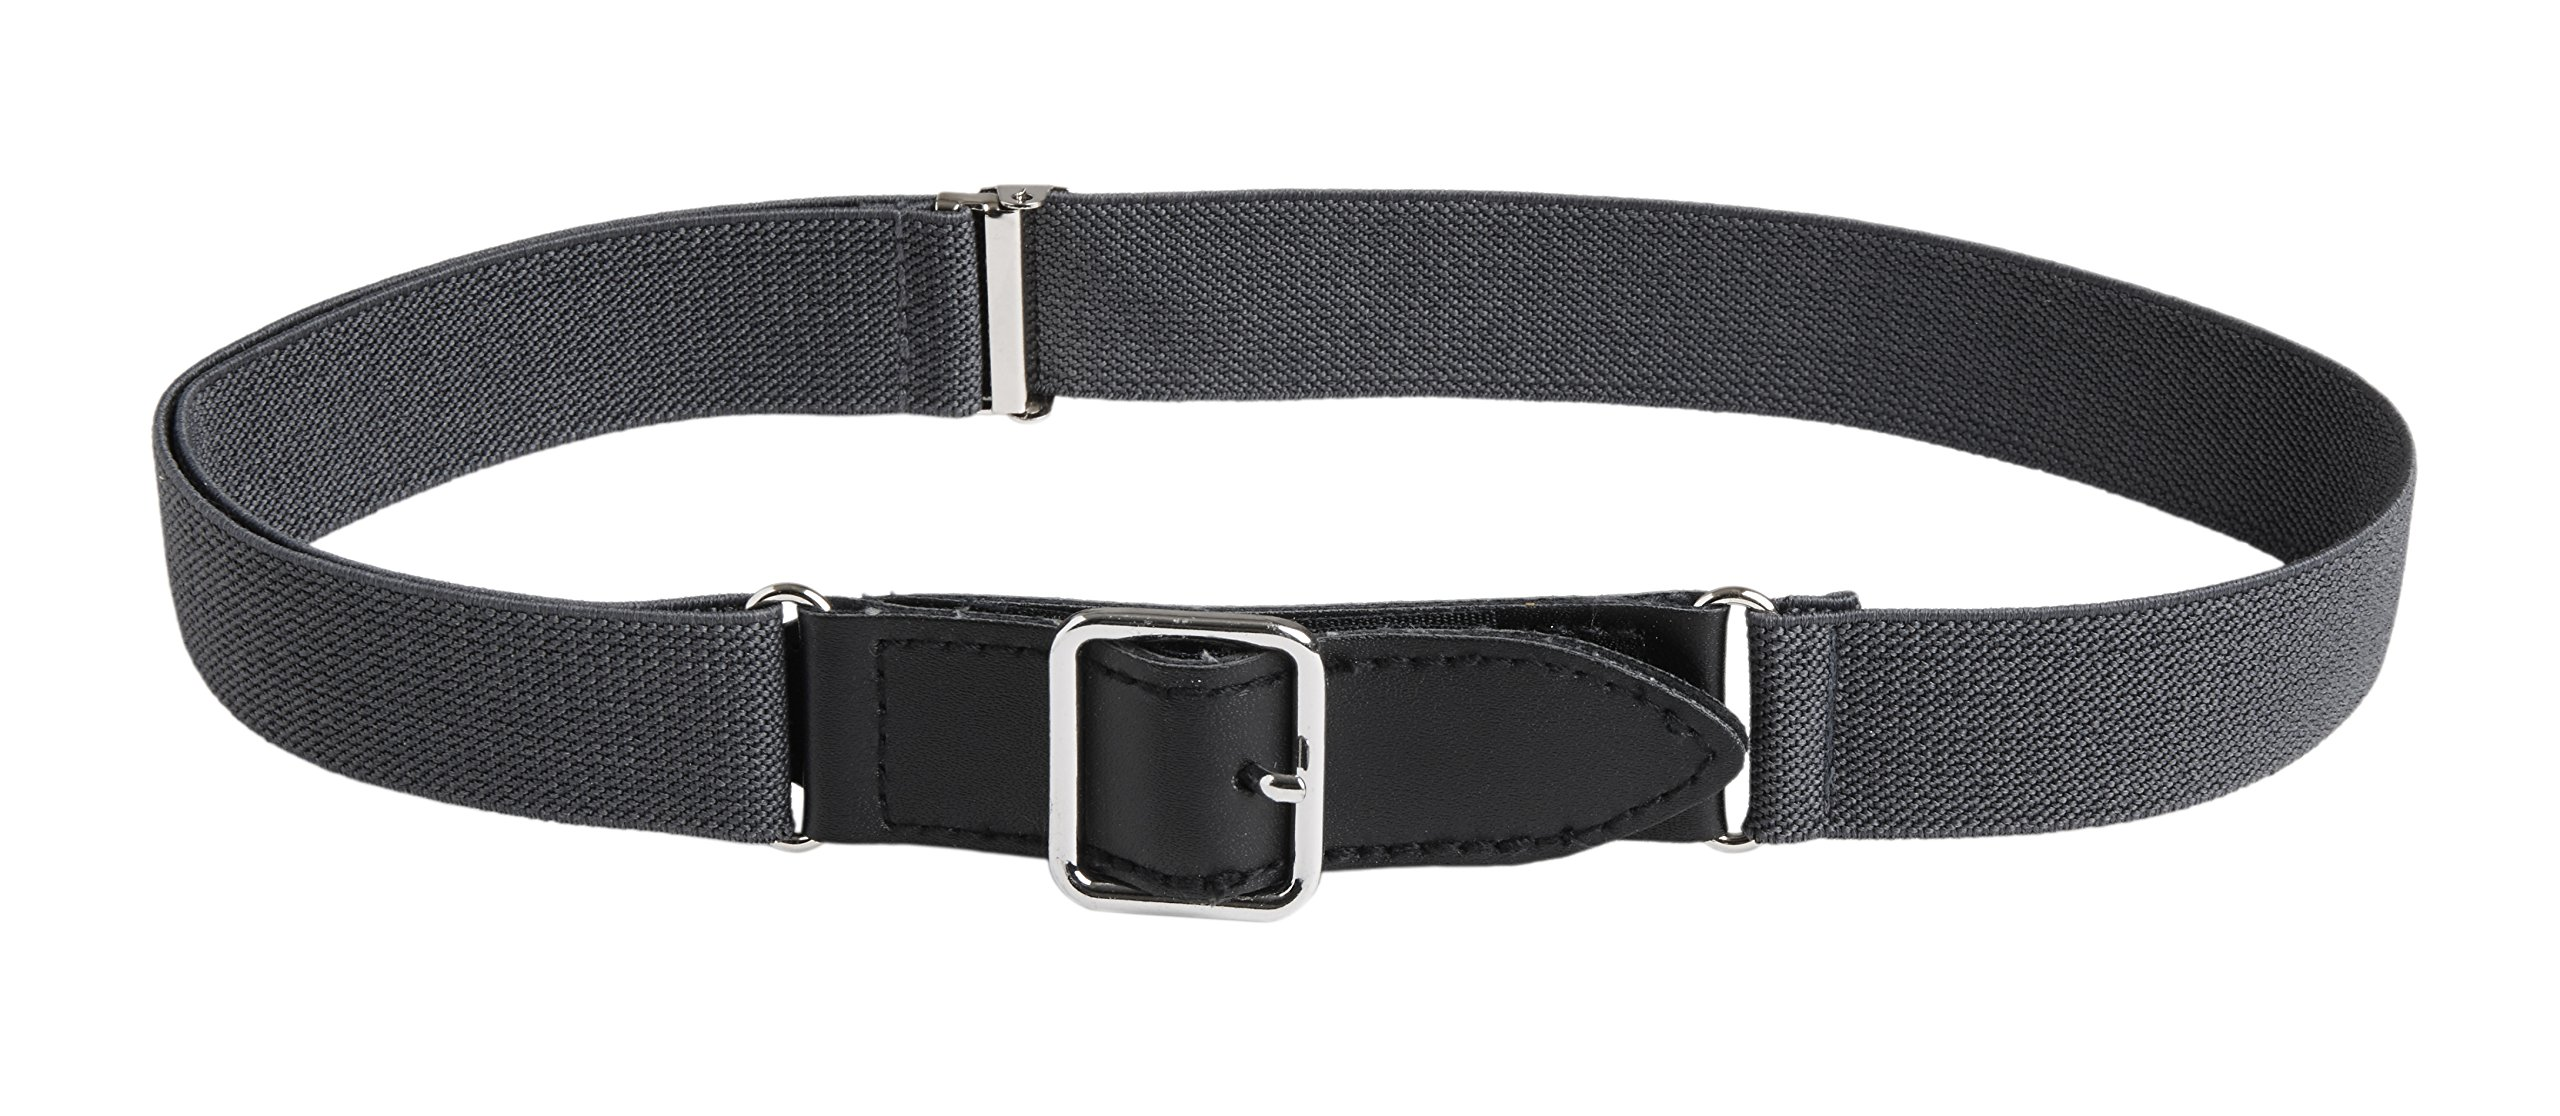 Sportoli8482; Kids Elastic Adjustable Leather Front Stretch Belt with Velcro Closure - Charcoal